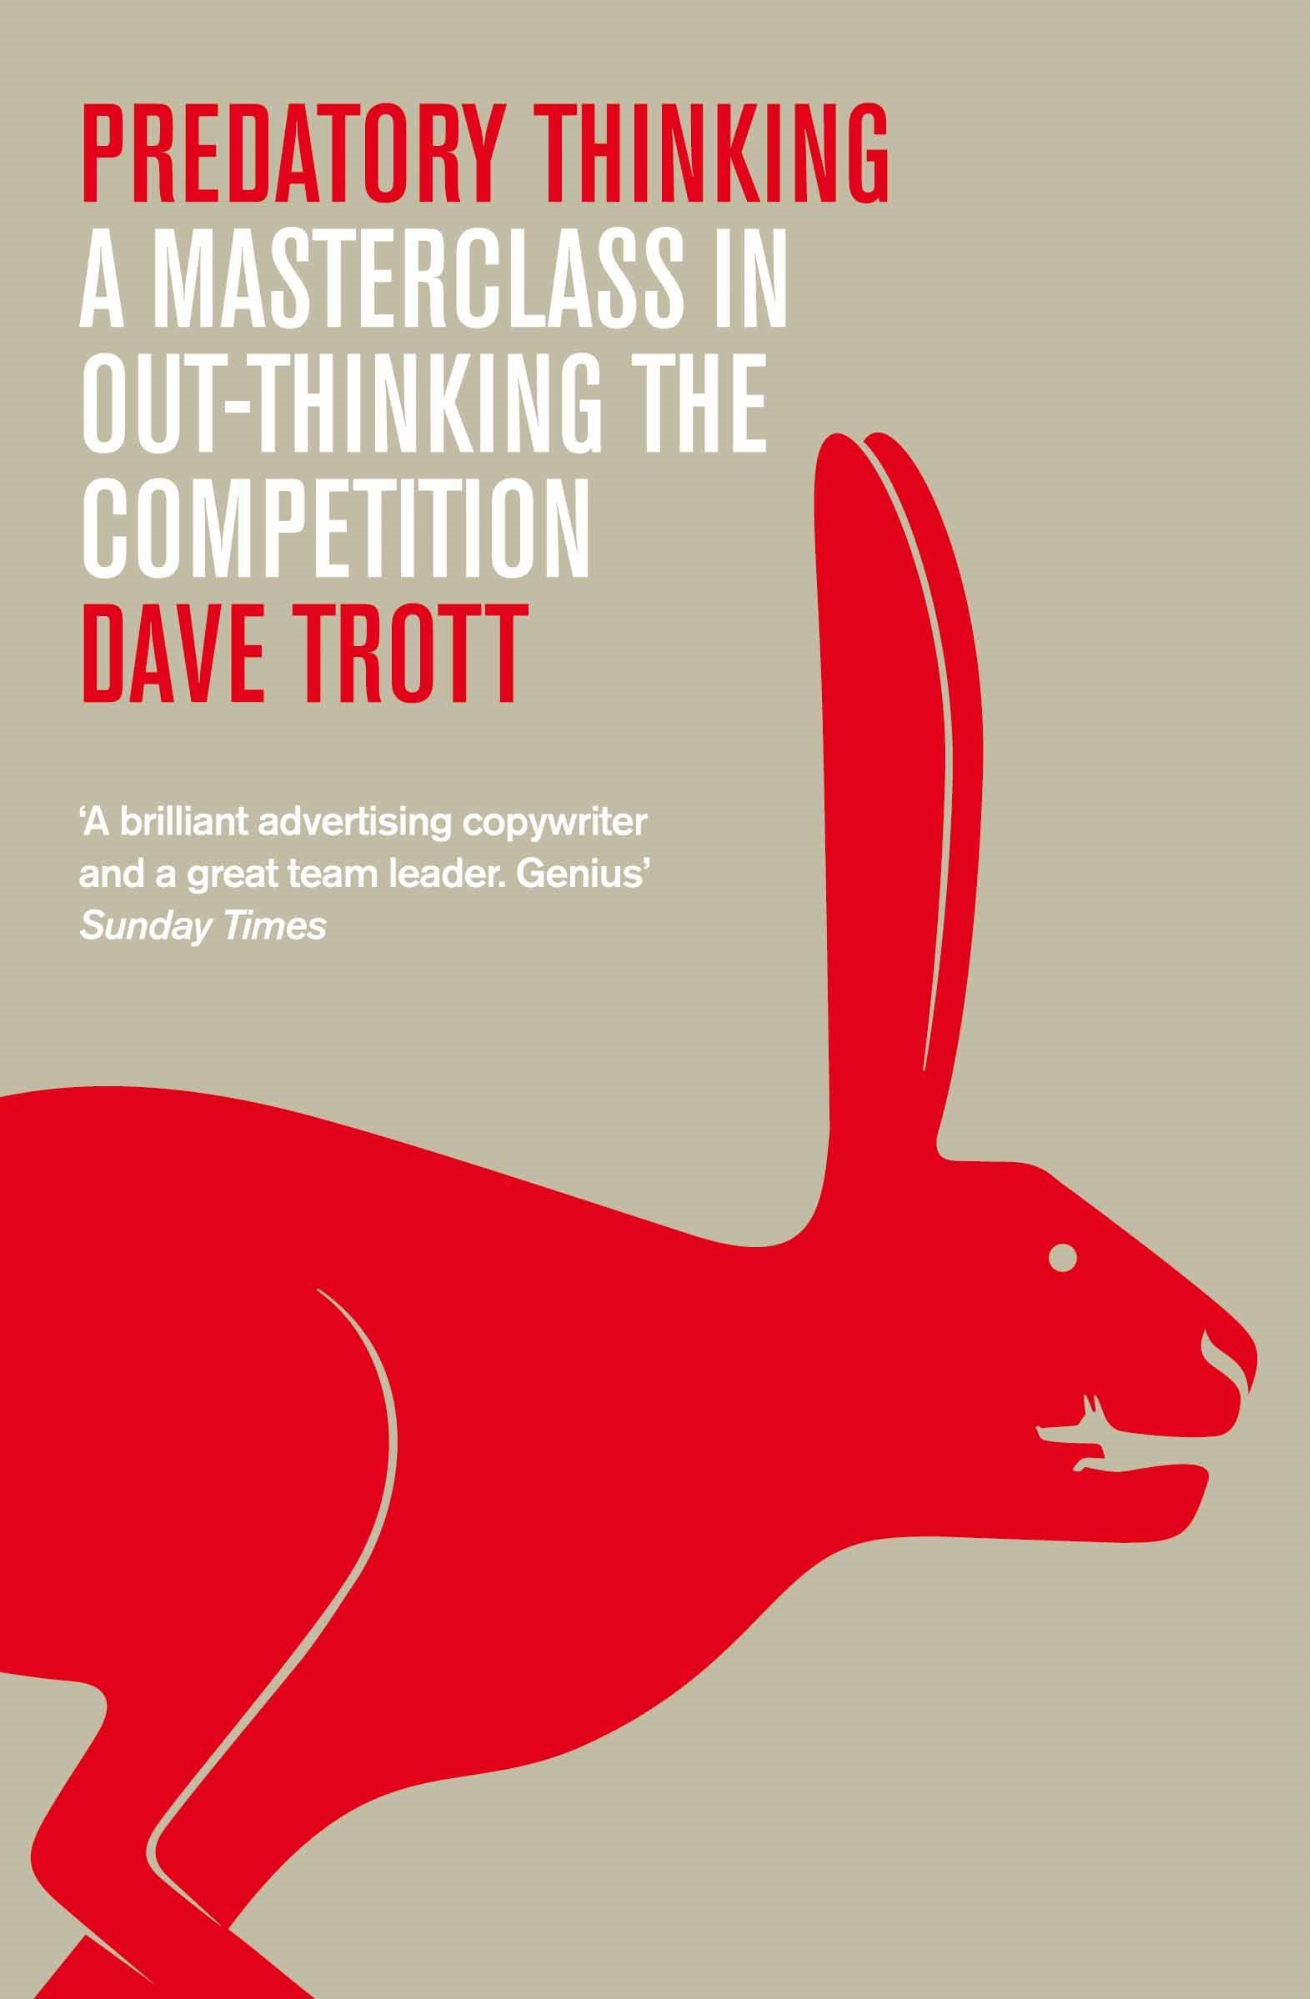 Predatory Thinking: A Masterclass in Out-thinking the Competition book cover